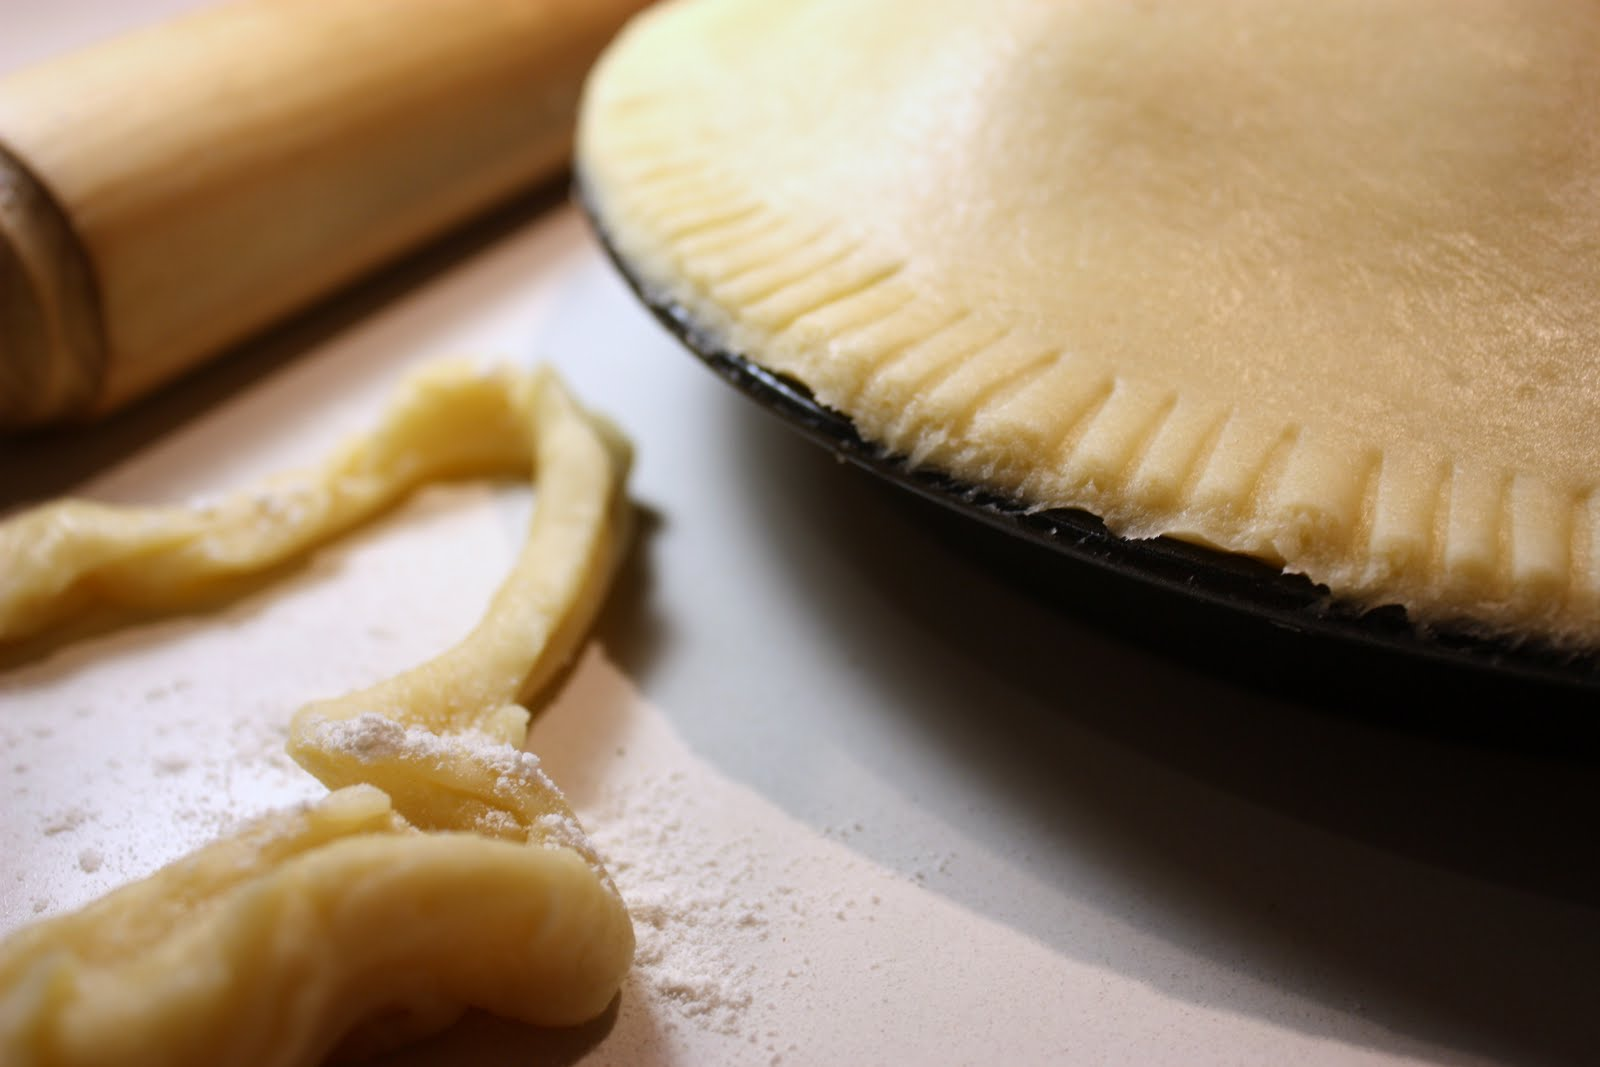 Megann 39 s kitchen photography sweet shortcrust pastry for Shortcrust pastry ingredients